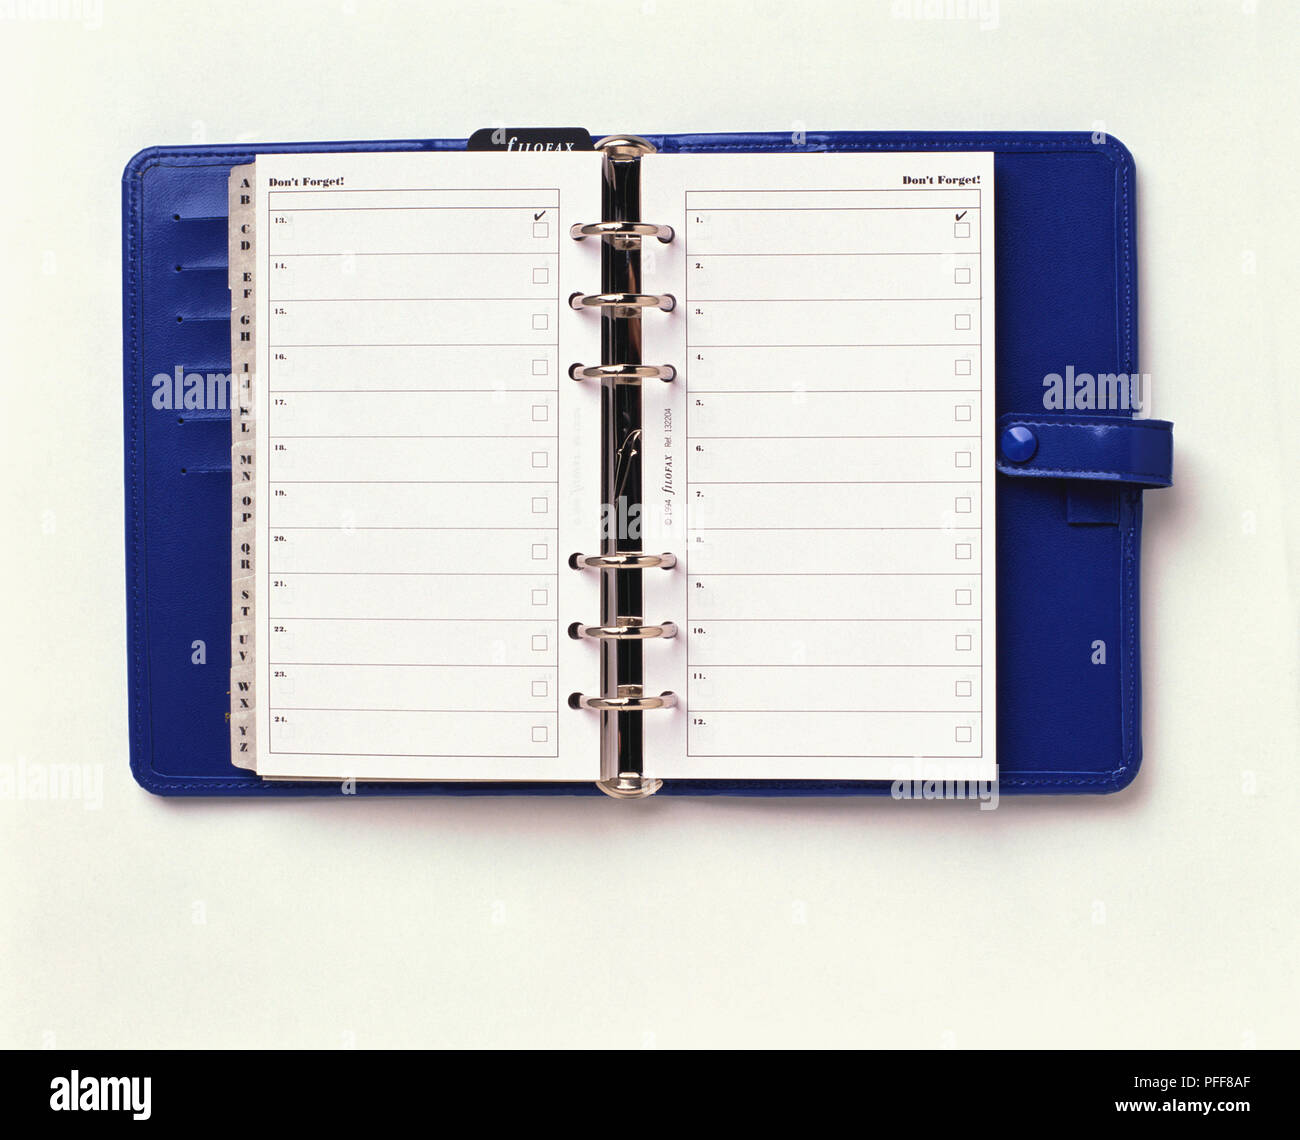 Personal organizer with alphabetical dividers open on 'Don't Forget' page. - Stock Image